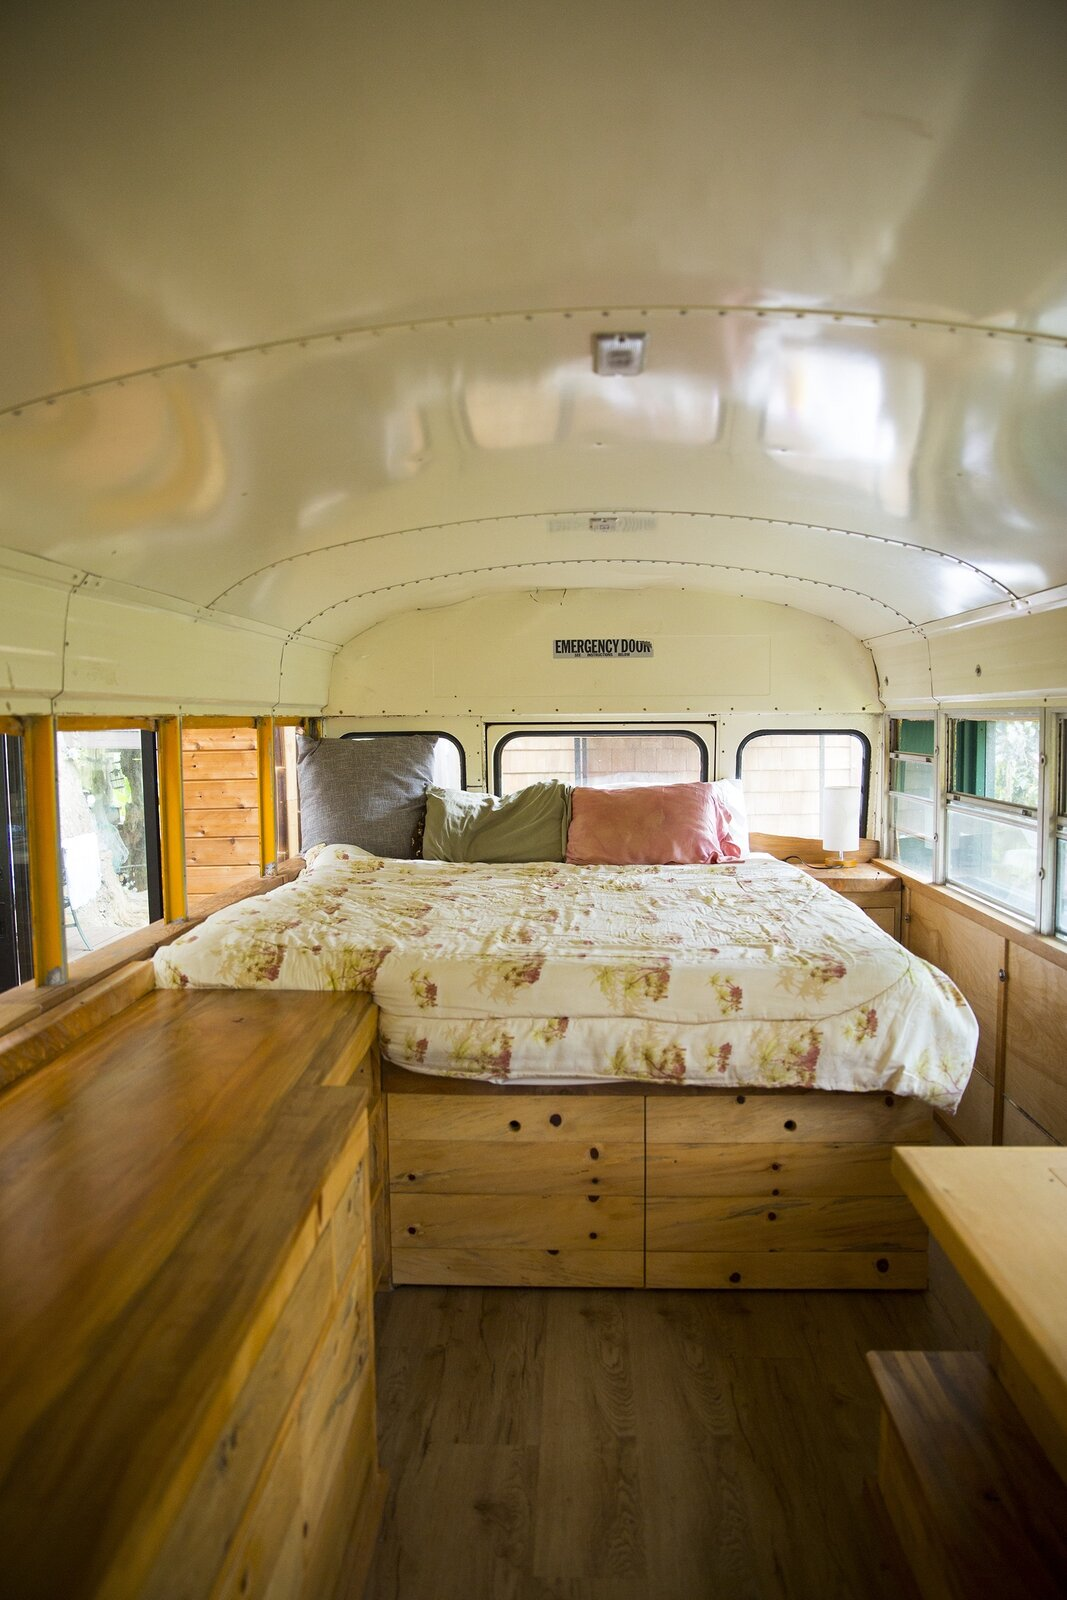 Photo 5 of 10 in These Legendary Surfers' Converted School Bus Connects to a Three-Story Tree House on Hawaii